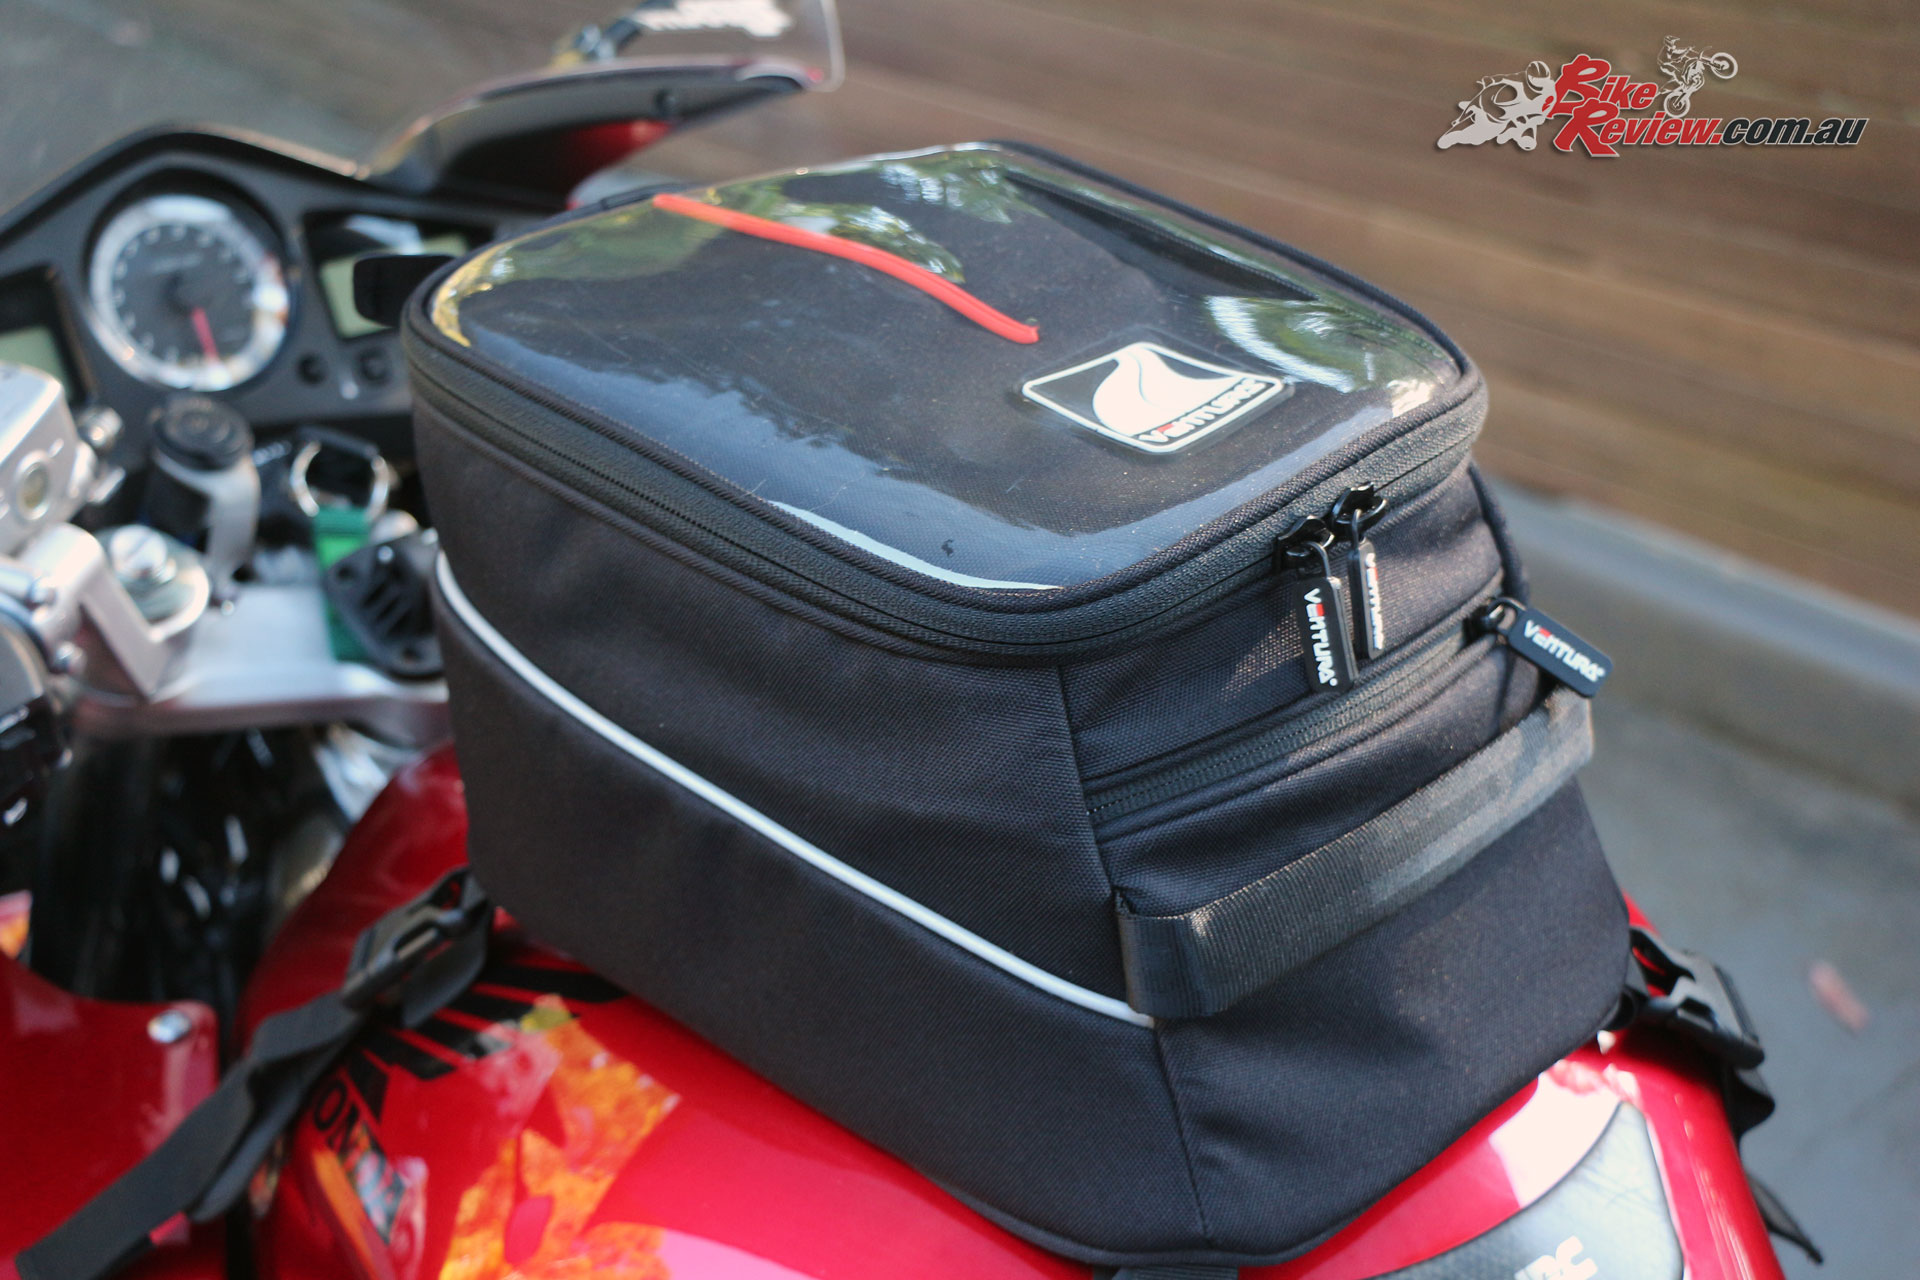 The Ventura Suki-Moto bag can be attached to the tank thanks to suction cups, making it ideal for metal or plastic tanks